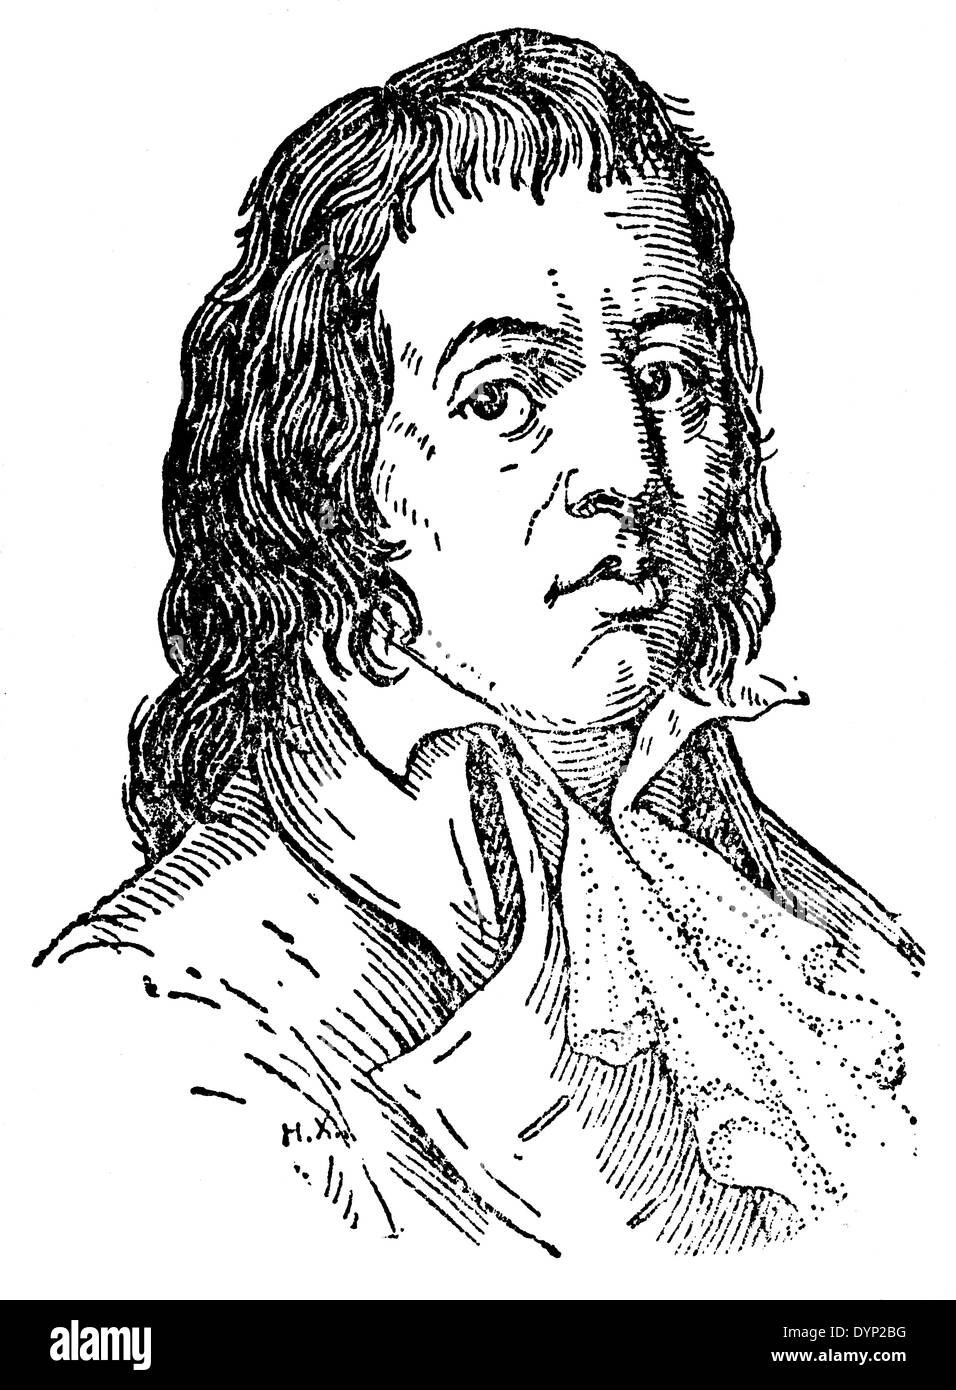 Francois Noel Babeuf (1760-1797), French political agitator and journalist, illustration from Soviet encyclopedia, 1926 - Stock Image